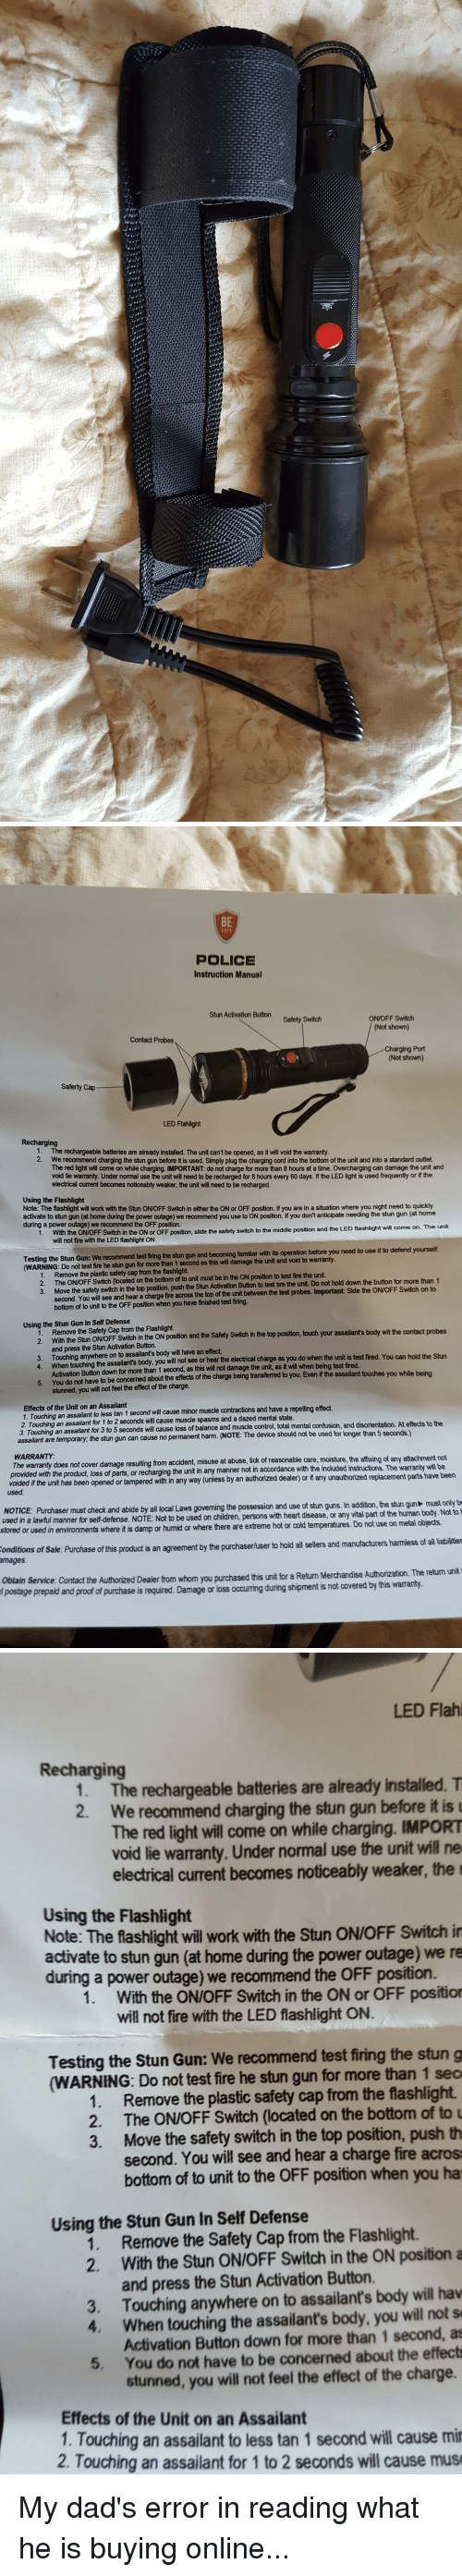 Fire, Funny, and Guns: BE  POLICE  Instruction Manual  Stun Activation Button  ON/OFF Switch  Safety Switch  (Not shown  Contact Probes  Charging Port  Not shown  Saferty Cap  LED Flah light  Recharging  The rechargeable batteries are already installed. The unit can'tbe opened, as it will void the warranty  2. We recommend charging the stun gun before it is used. Simply plug the charging cord into the bottom of the unit and into a standard outlet.  The red light will come on while charging. IMPORTANT: do not charge for more than 8 hours at a time. Overcharging can damage the unit and  void lie wamanty. Under normal use the unit will need to be recharged for 8 hours every 60 days. lf the LED light is used frequently or if the  lectrical cument becomes noticeably weaker, the unit will need to be recharged  Using the Flashlight  a situation where you night need to quickly  Note: The flashlight will work with the Stun ONIOFF Switchin either the ON or OFF position. If you  activate t  stun gun (at home during the power outage) we recommend you use to ON position. you don't anticipate needing the stun gun  at home  during a power outage)  we recommend the OFF position  t will come on. The unit  nd the LED flashlight  ddle positi  fety switch to th  With the ON/OFF Switch in the ON or OFF position, slide th  wil not fire with the LED flashlight ON  Testing the Stun Gun: We recommend test fring the  stun gun and becoming familiar with its operation before you need  (WARNING: Do not test fire he stun gun for more than 1 second as this will damage the unit and void to warranty  Remove the plastic safety cap from the flashlight.  see it to defend yourself.  The ONOFF Switch (located on the bottom of to unit must be in the ON position to test fire the unit.  hold down the button for more than  Move the safety switch in the top position, push the Stun Activation Button to test hre the unit. Do not on to  second. You will see and hear a charge fire across  the top of the unit bet